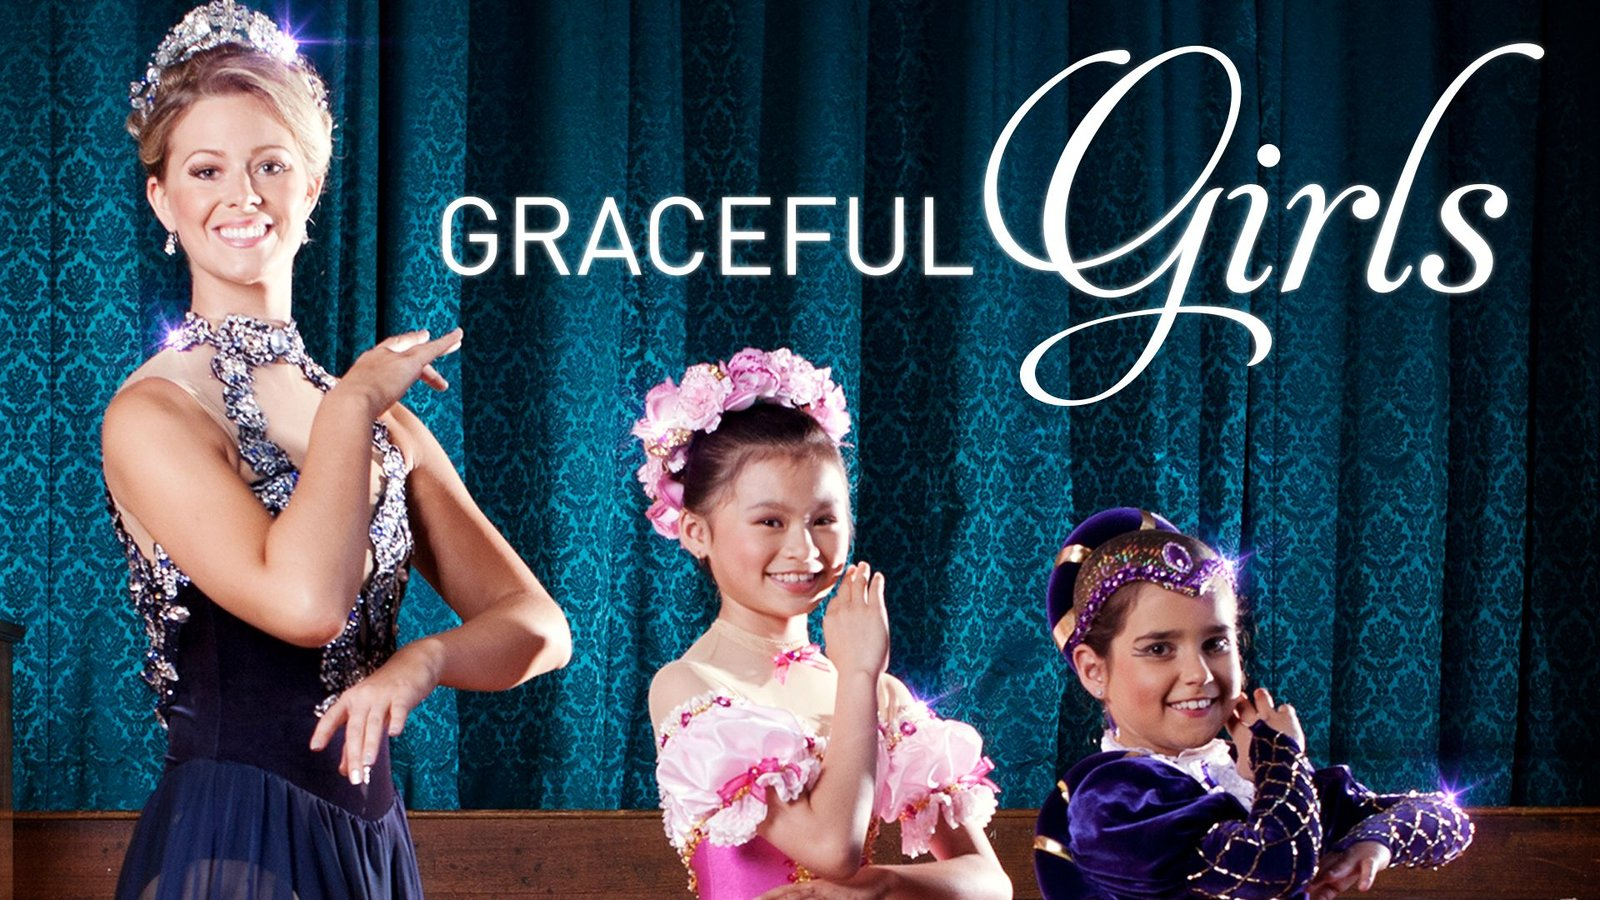 Graceful Girls - Live to Dance. Dance to Win.